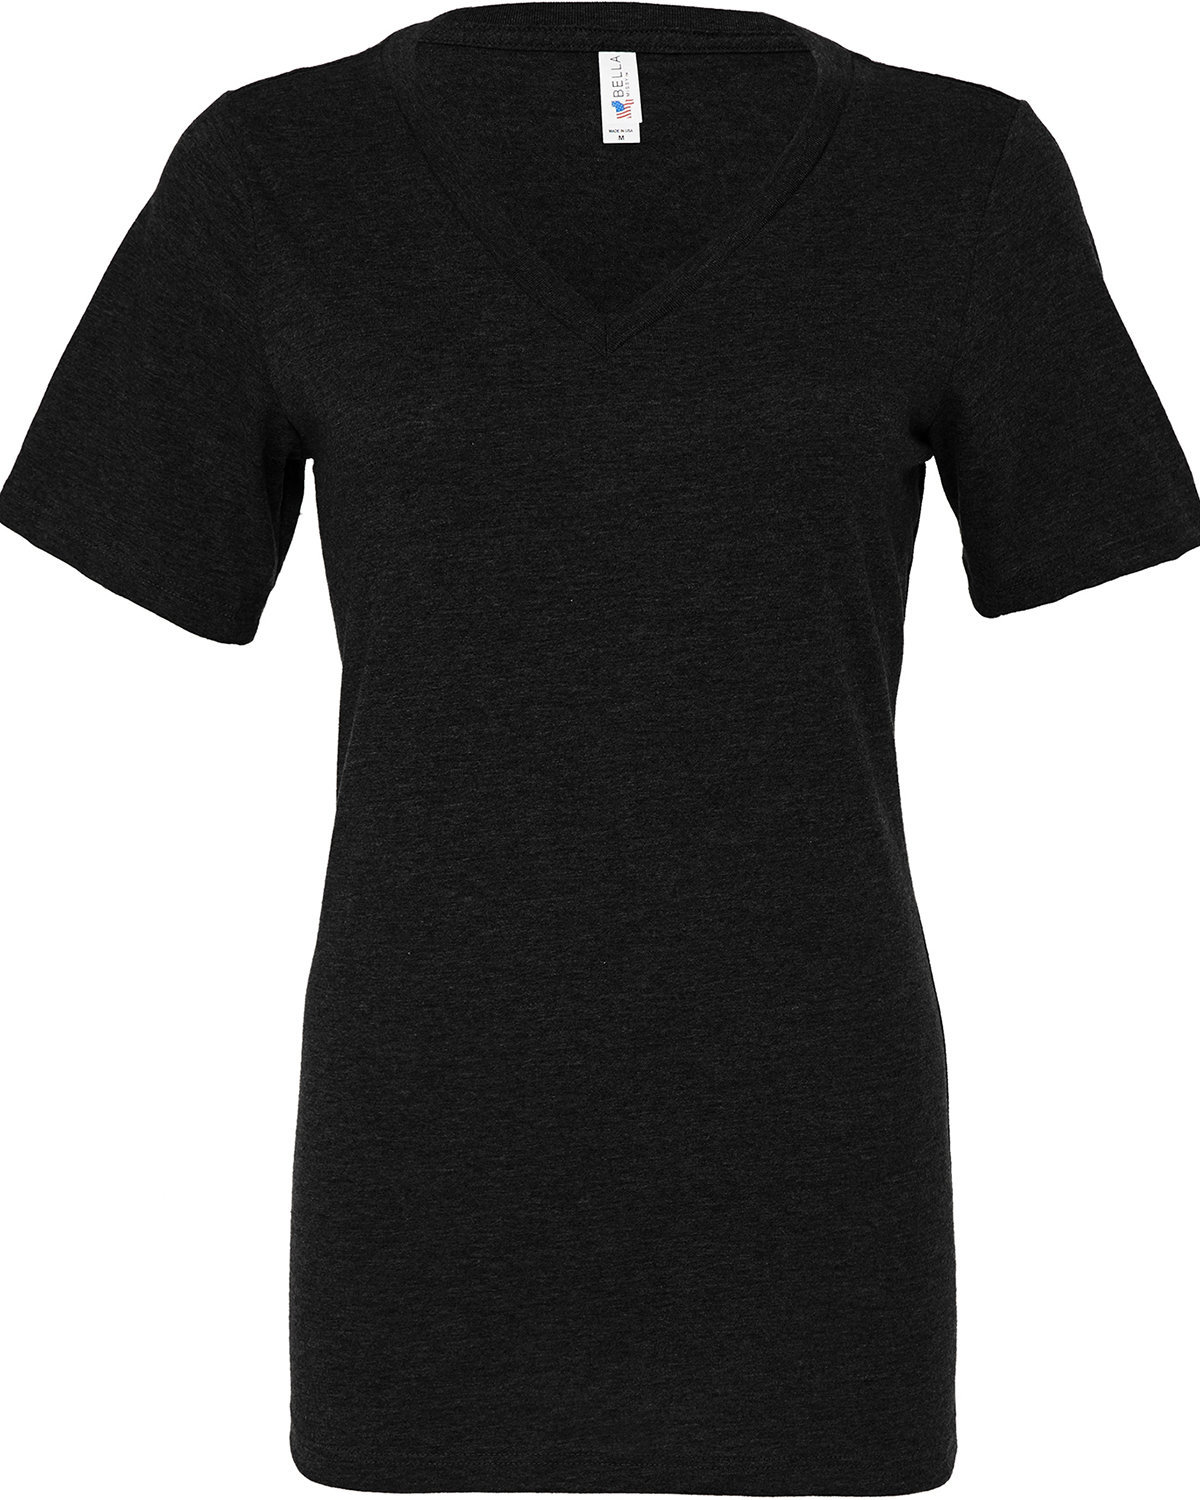 Bella + Canvas Ladies' Relaxed Jersey V-Neck T-Shirt BLACK HEATHER